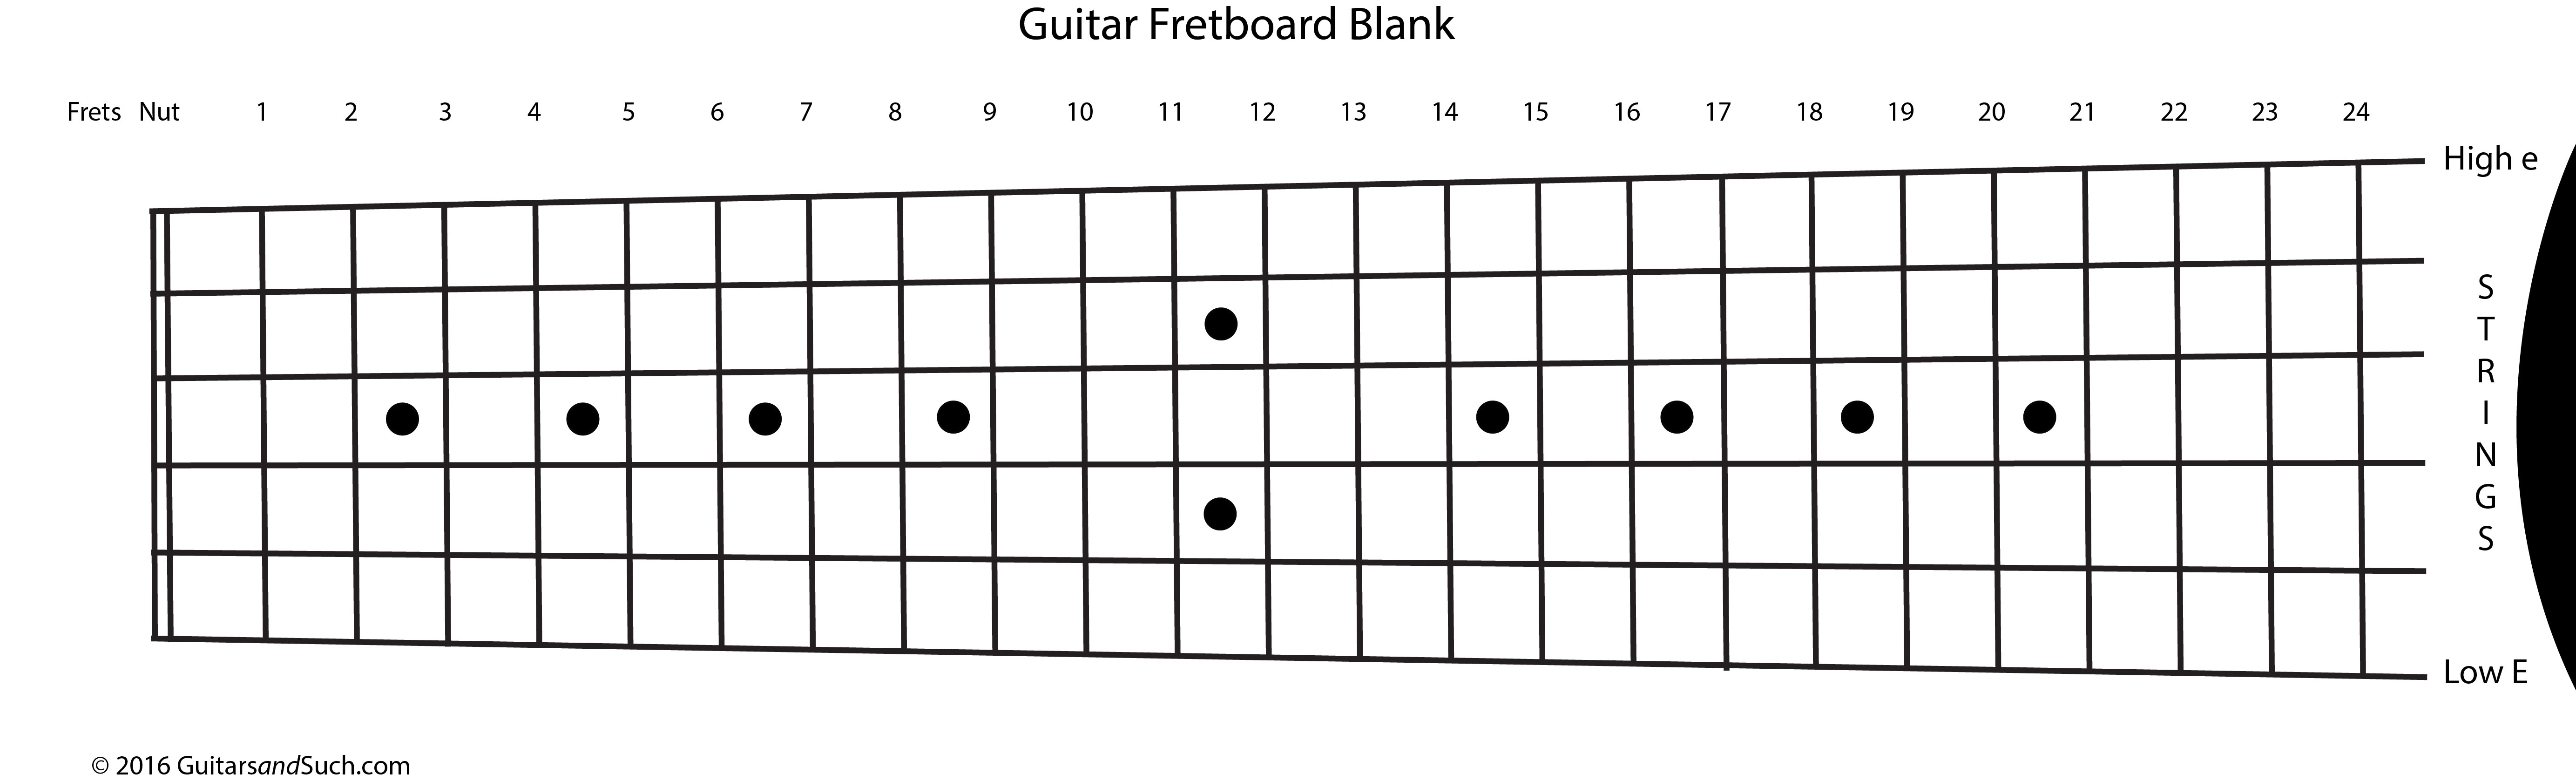 Famous Guitar Body Templates Illustration - Examples Professional ...